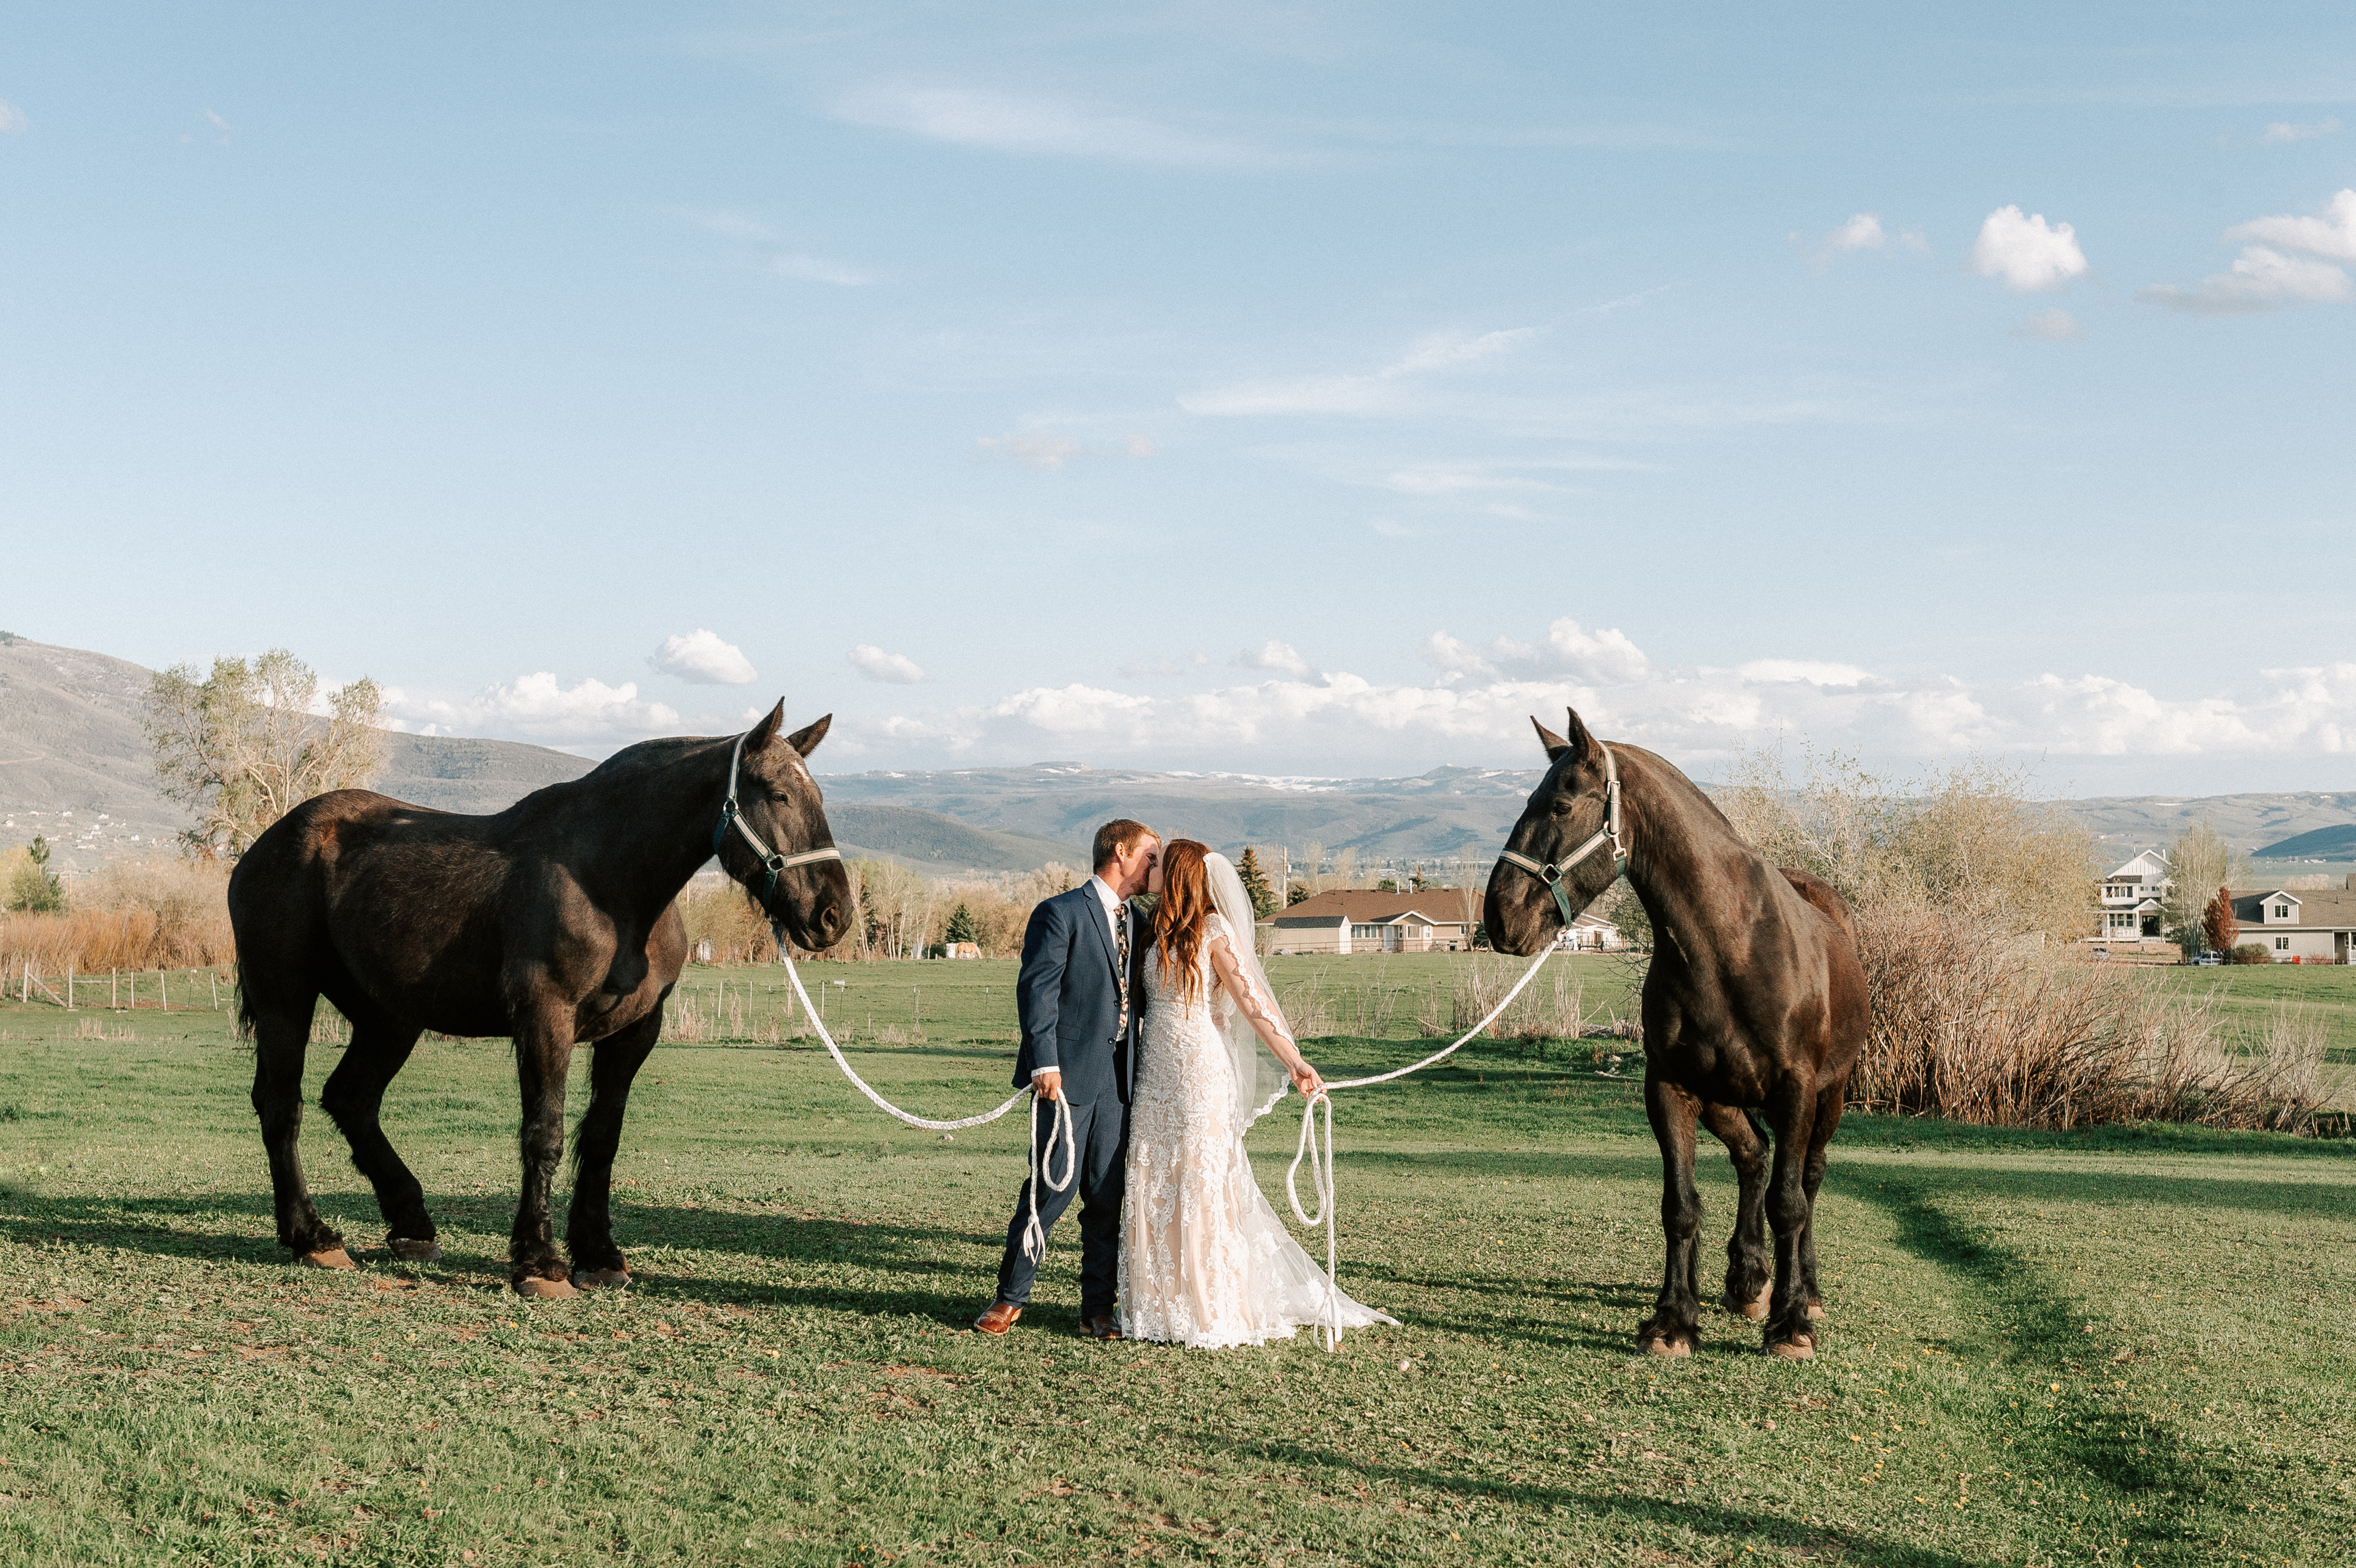 Classic Wedding Dress Cowboy Boots Horse Ranch Tew Treasures Photography 3